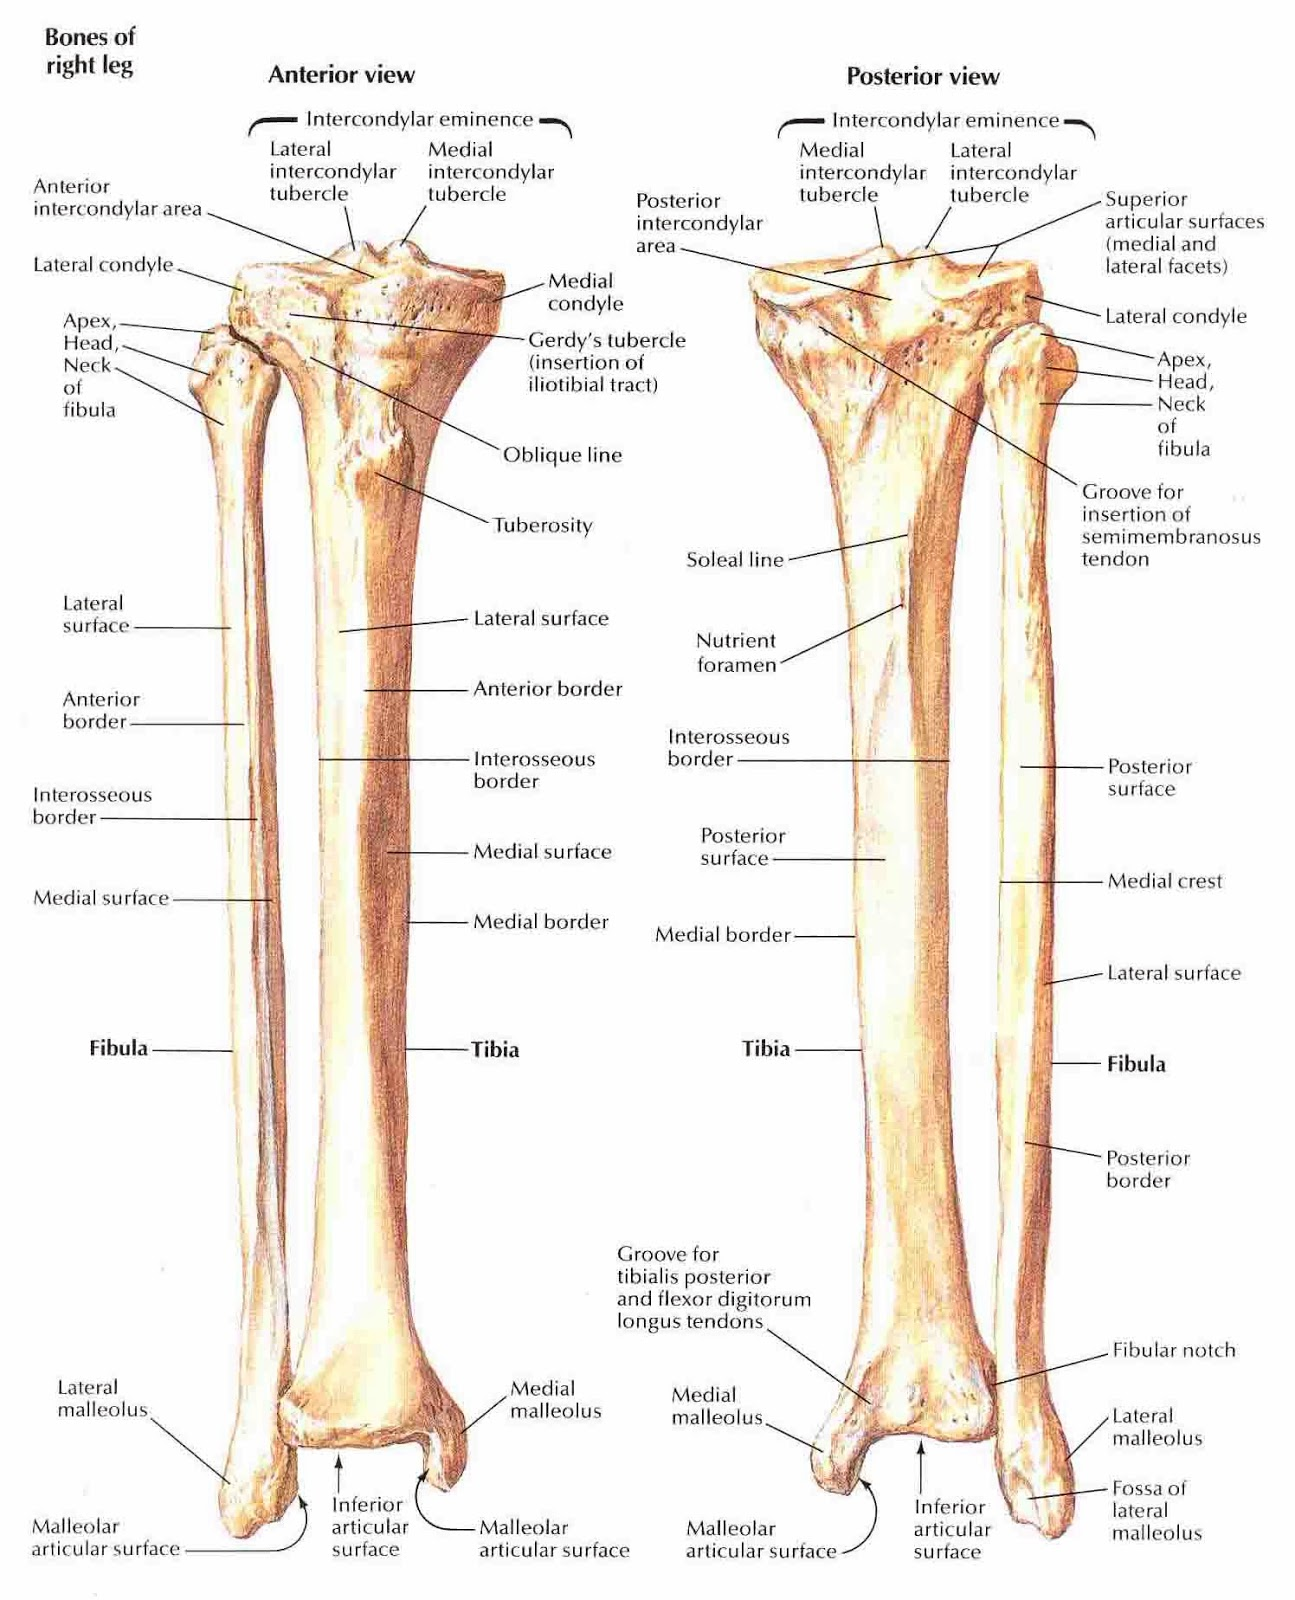 biology diagrams,images,pictures of human anatomy and ... diagram of tibia stress fracture tibia diagram